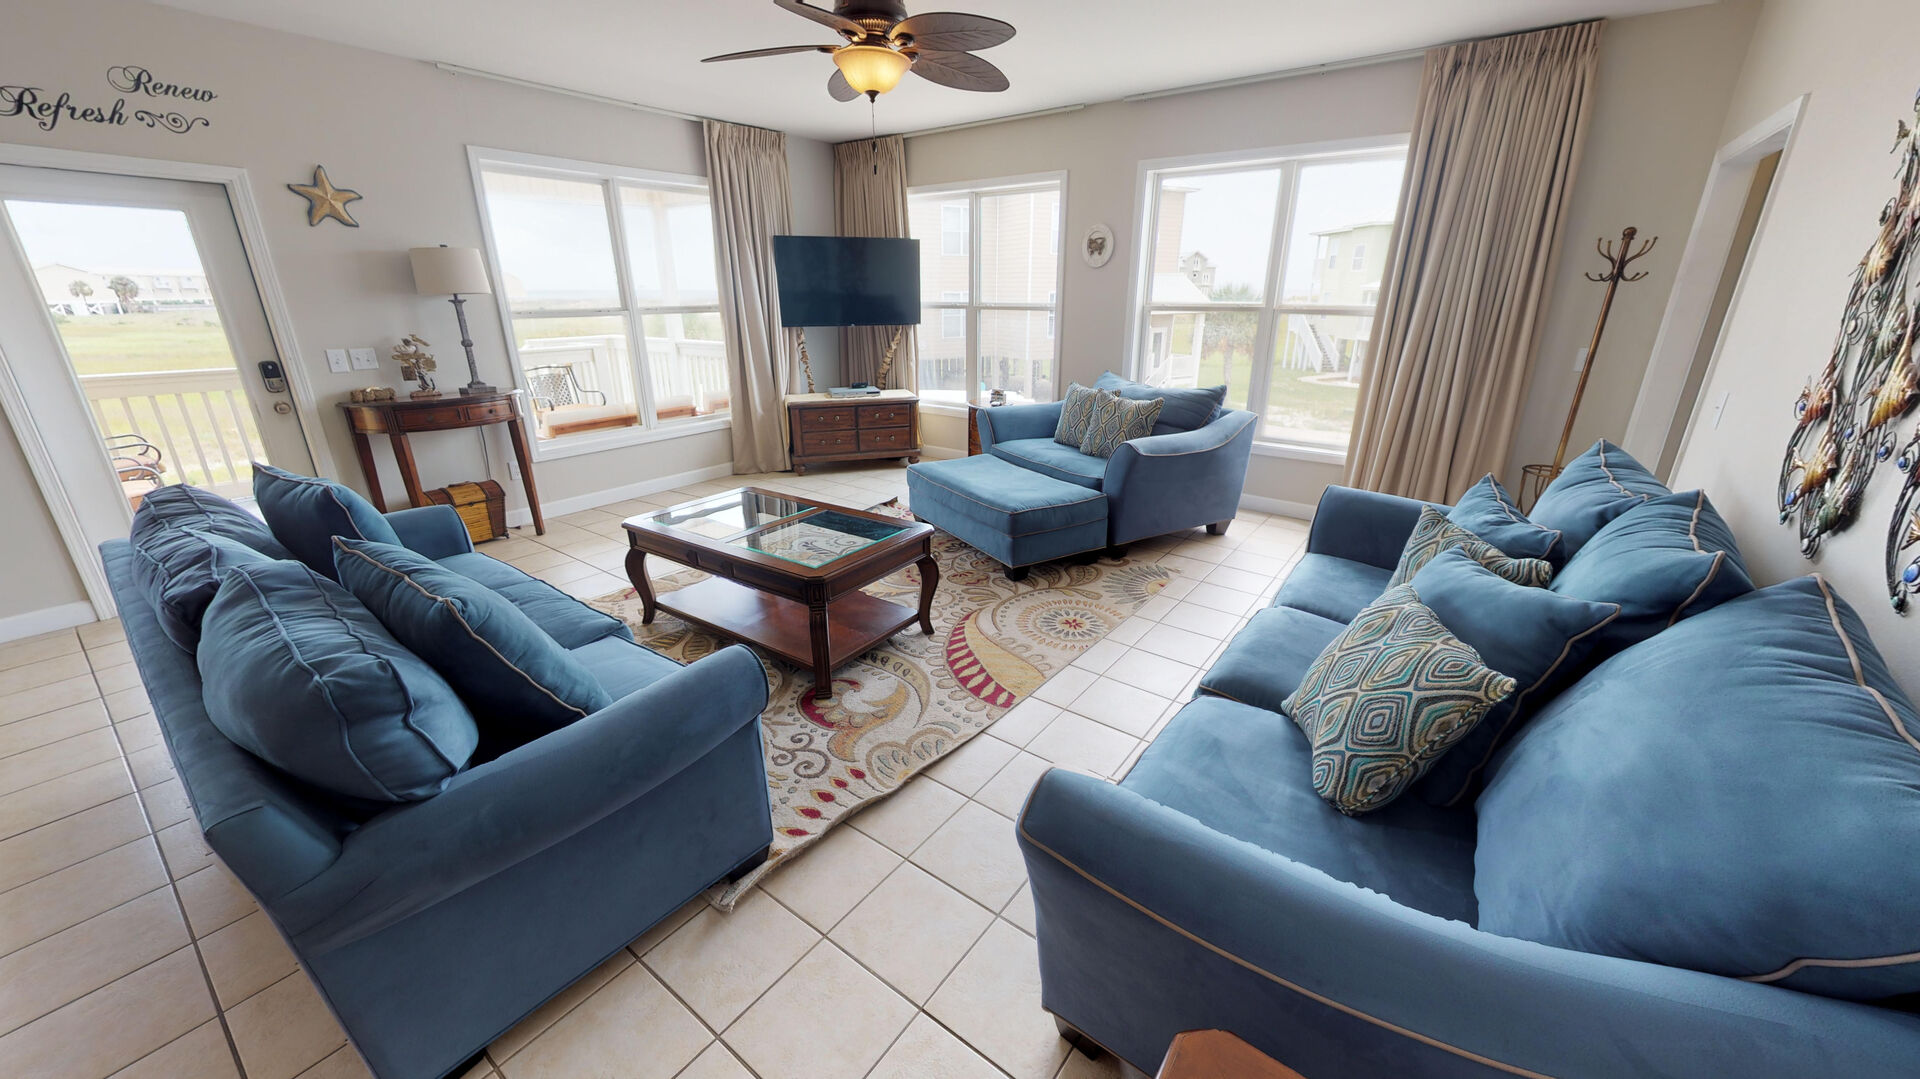 Living Area Features Two Blue Sofas and One Chair.